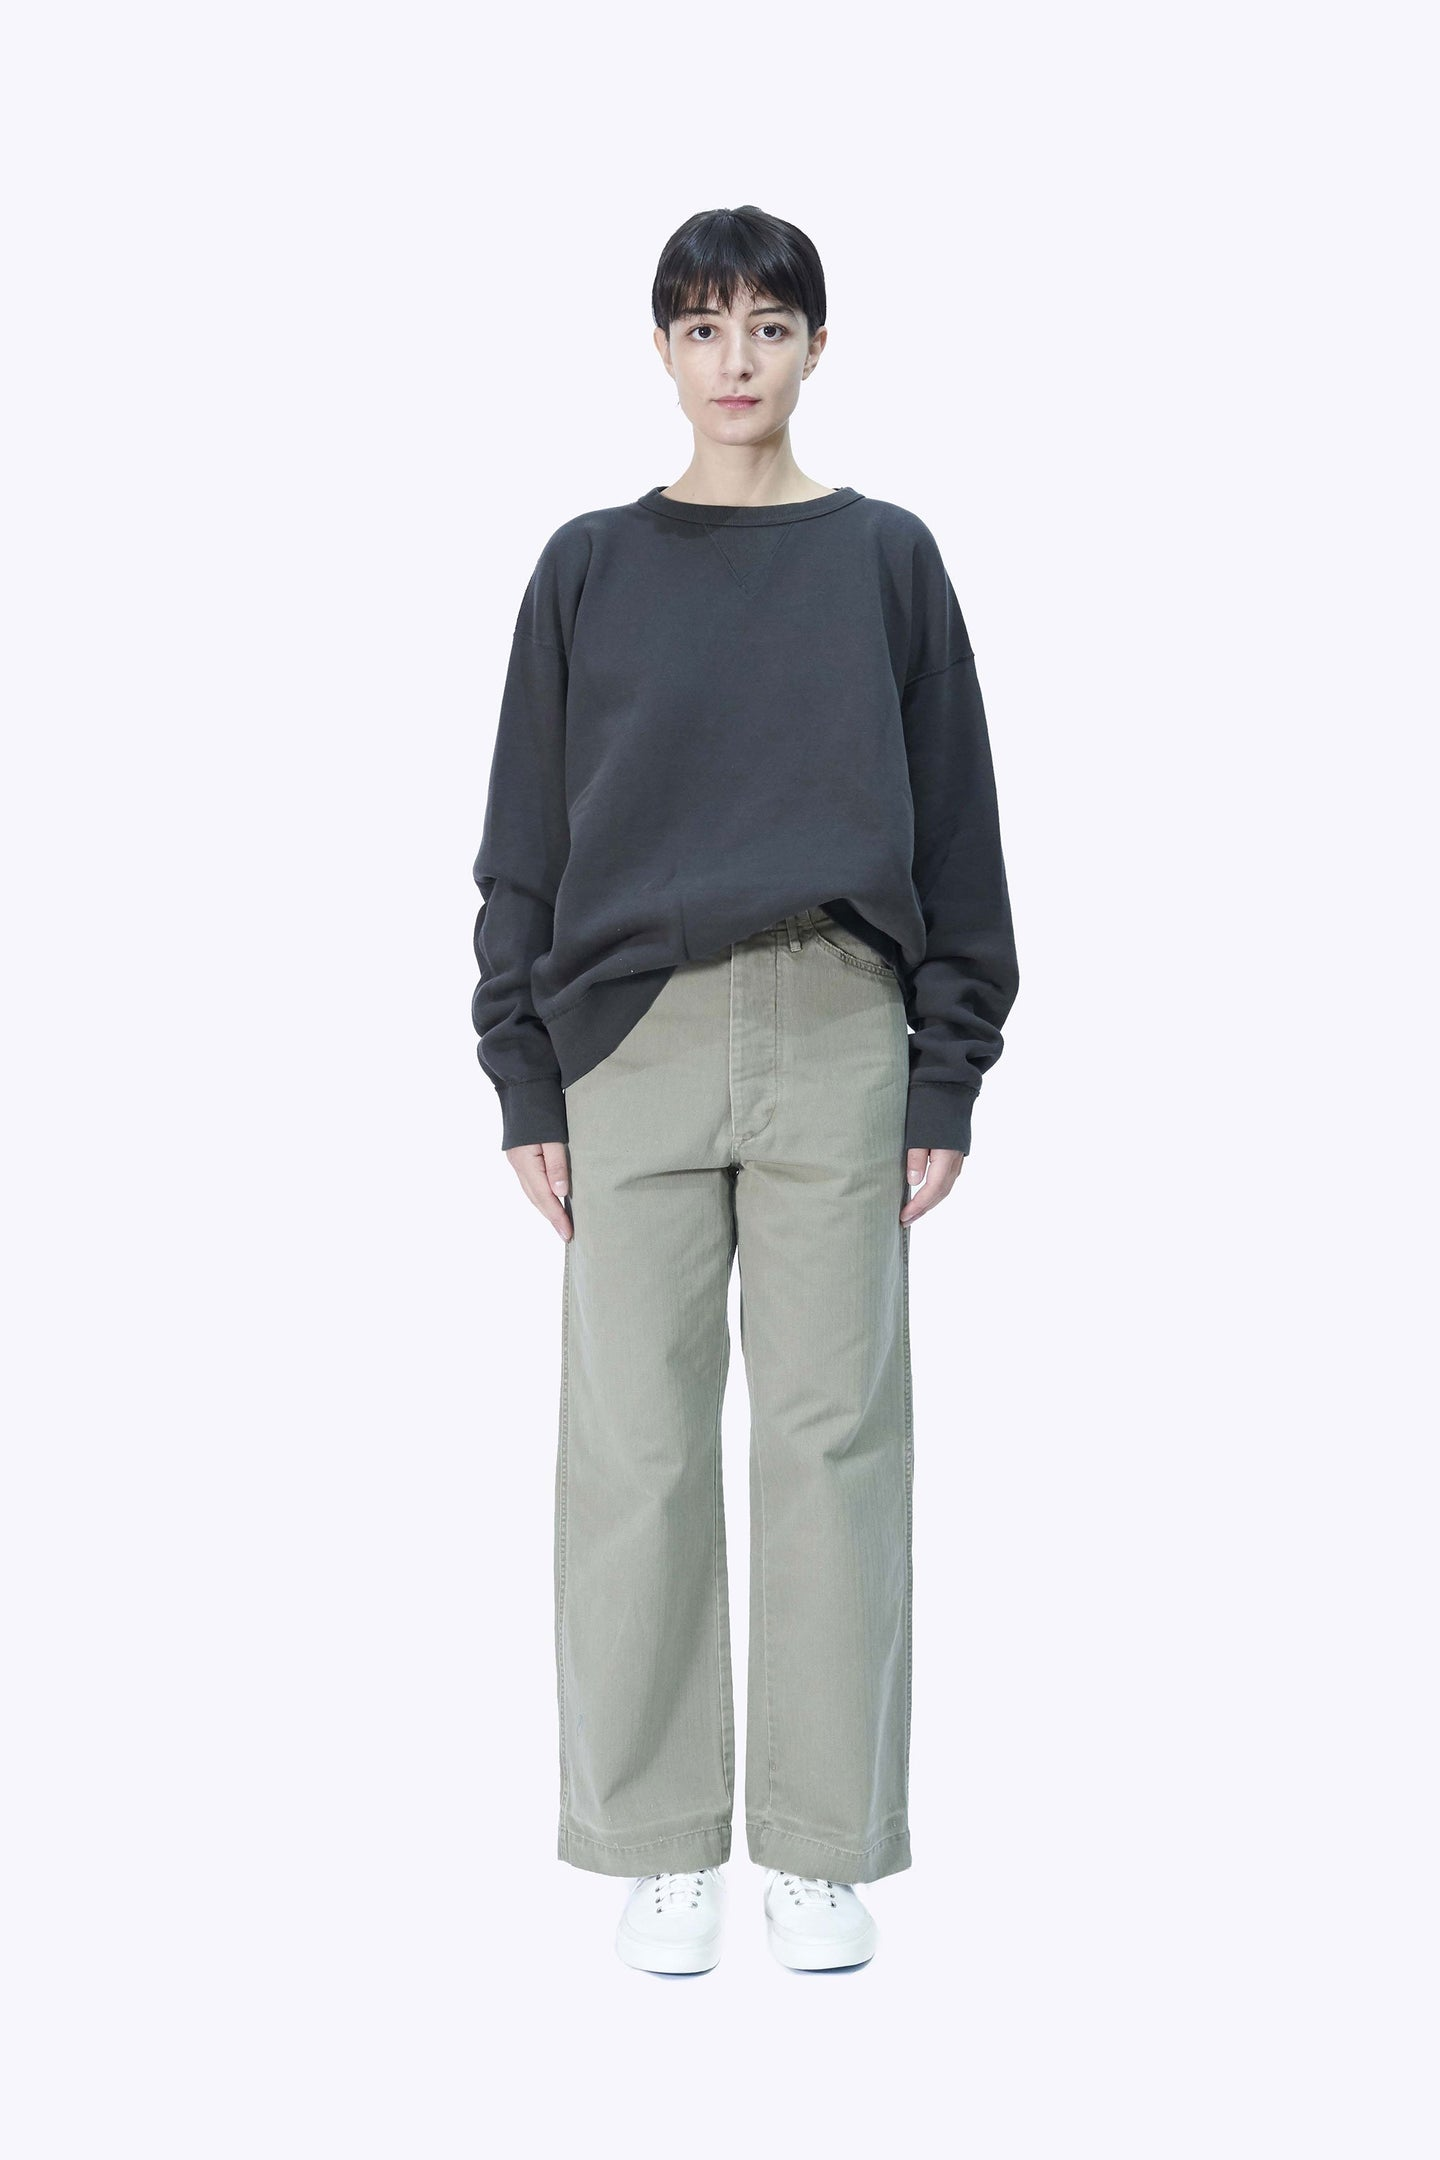 Unisex Herringbone M-41 Trouser in Khaki Green by Chimala